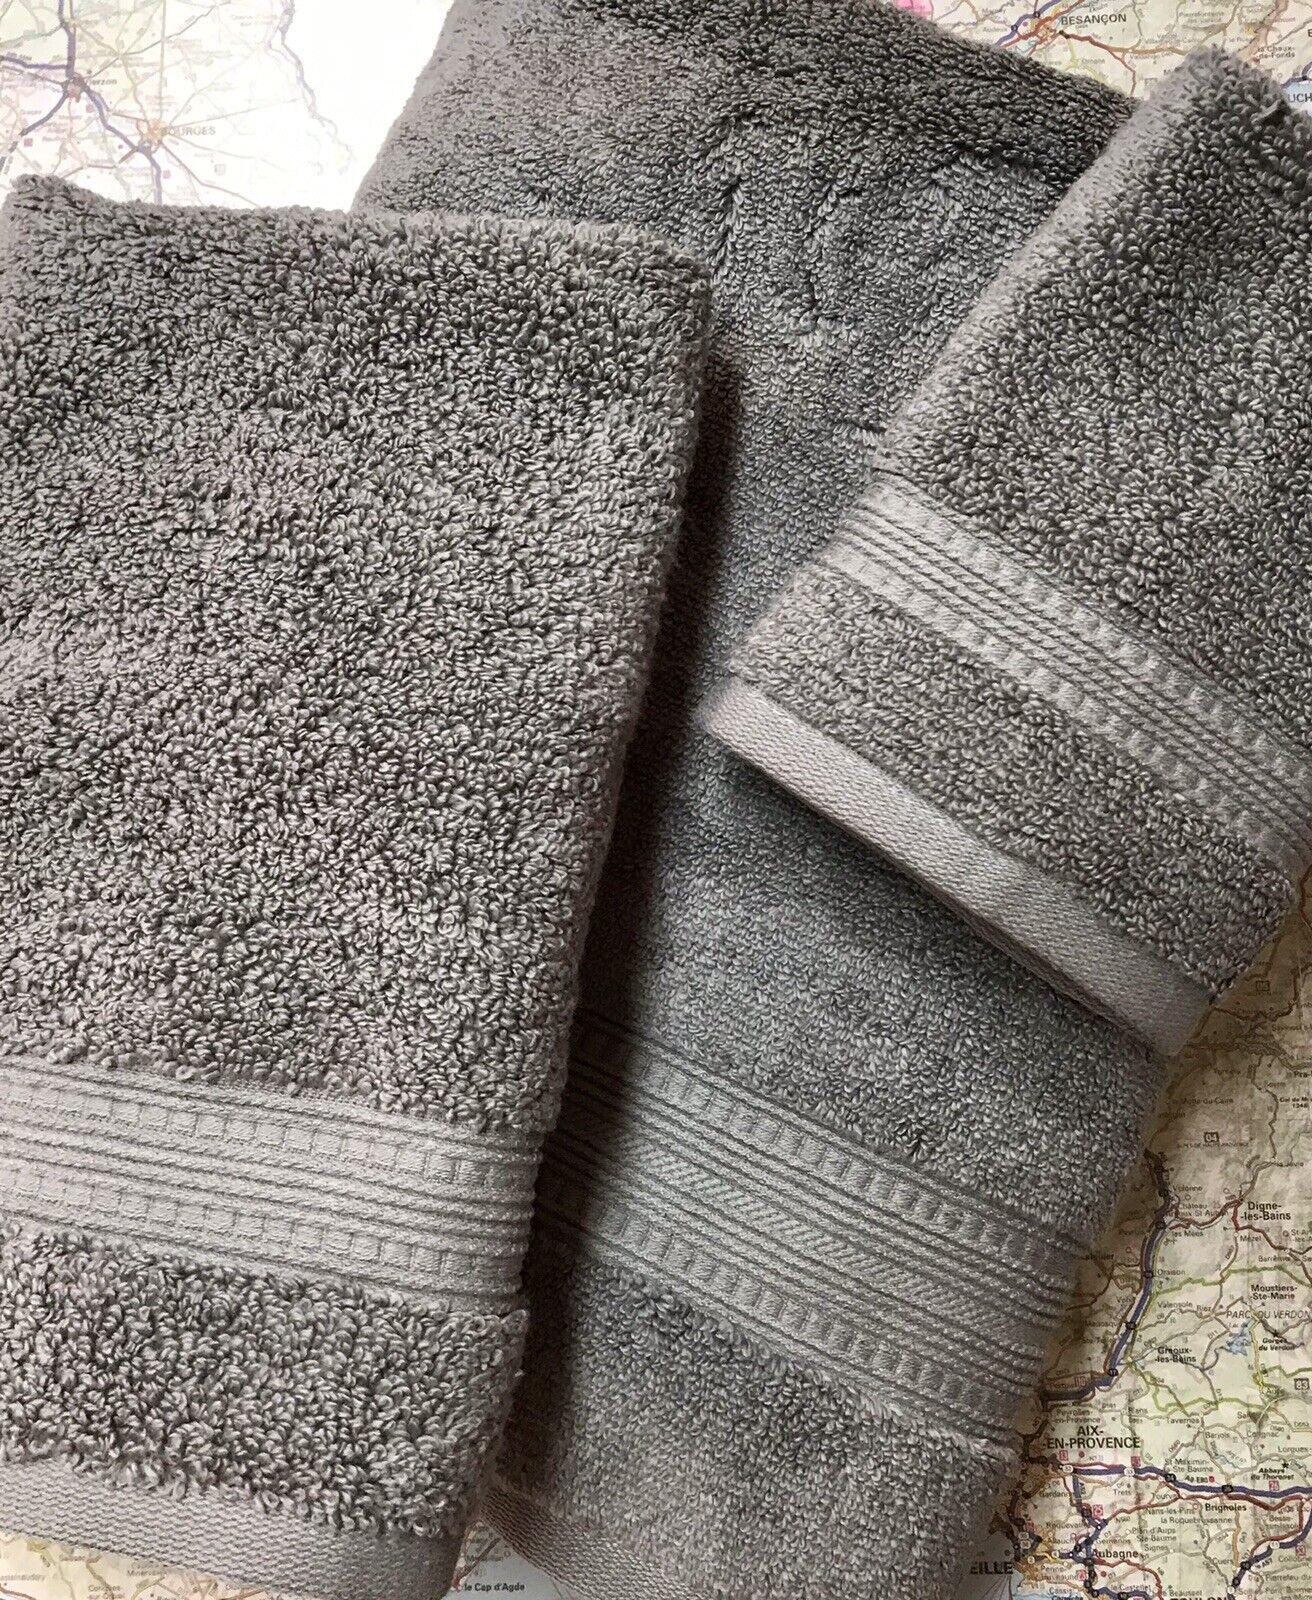 NEW Monogrammed 3 pieces towels set from CHARISMA-100% Hygro cotton - GREY